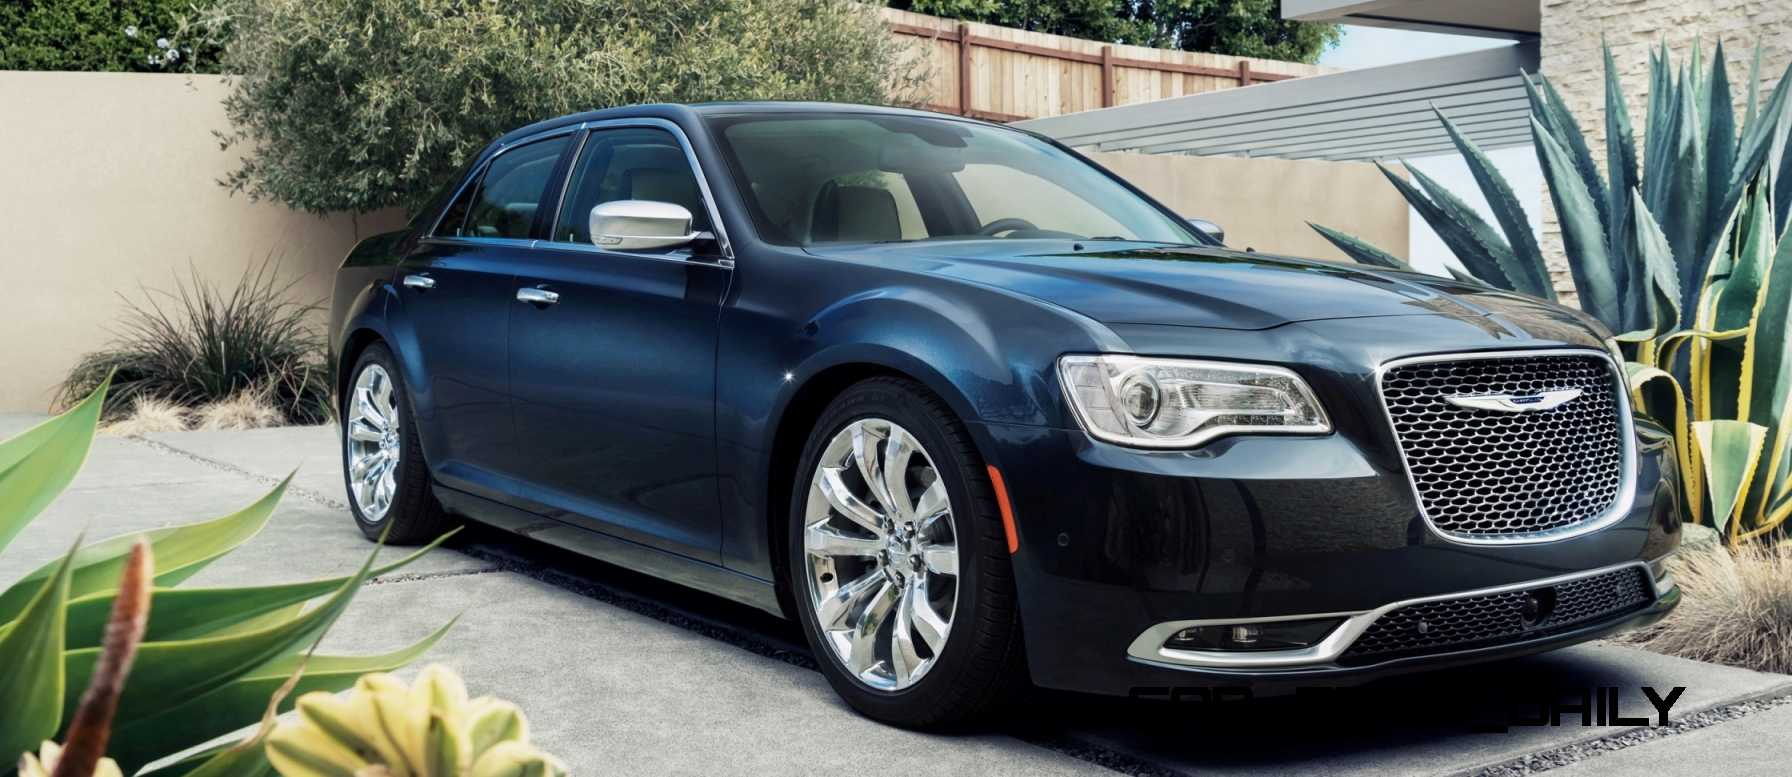 2015 chrysler 300c and 300s for Chrysler 300c